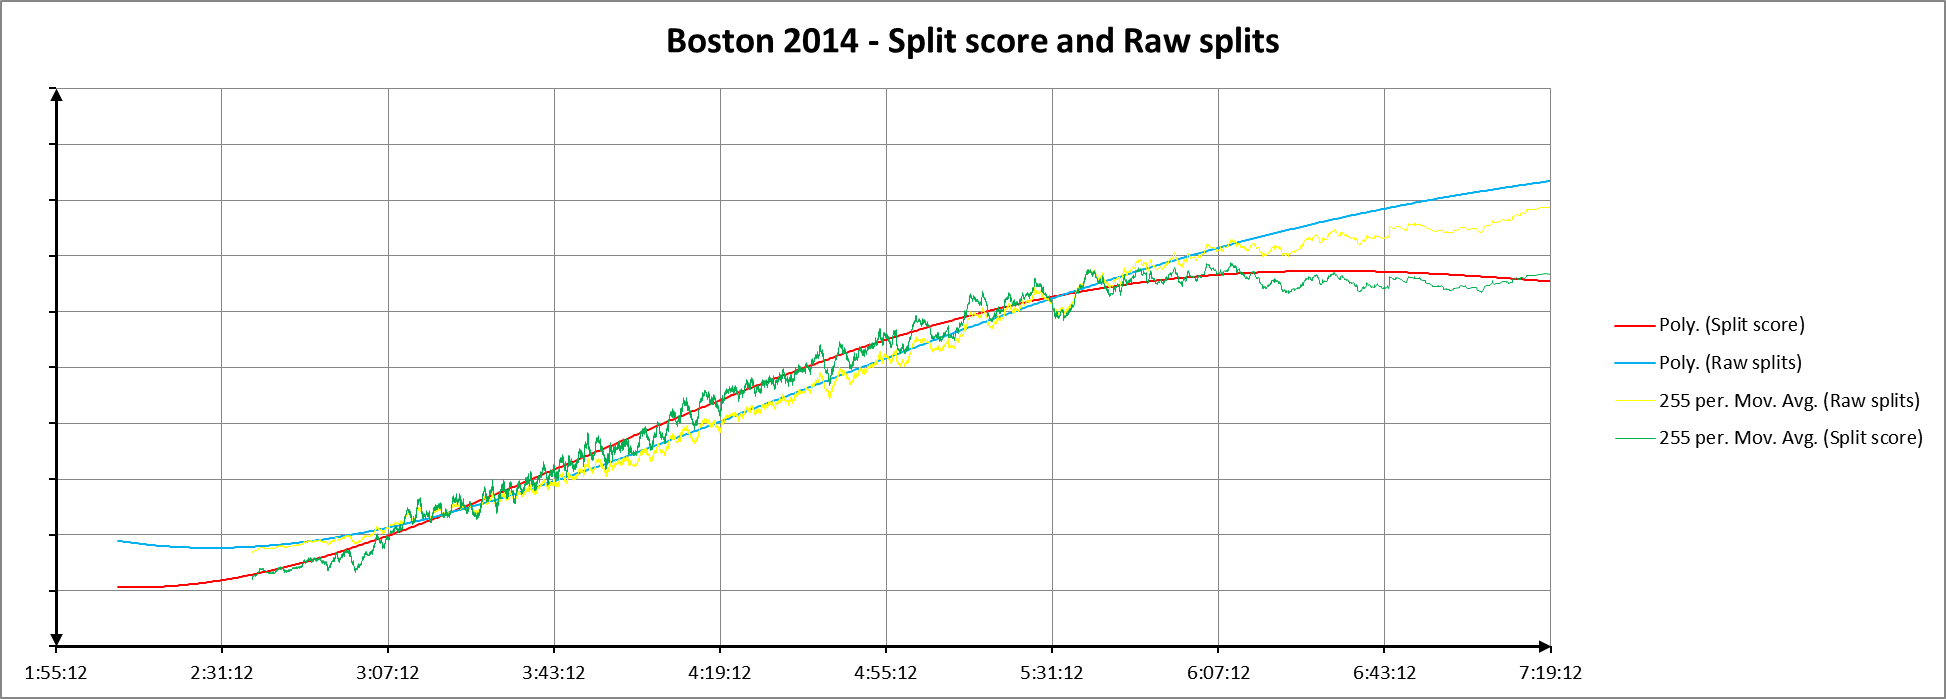 Bos 2014 split and raw poly-mov